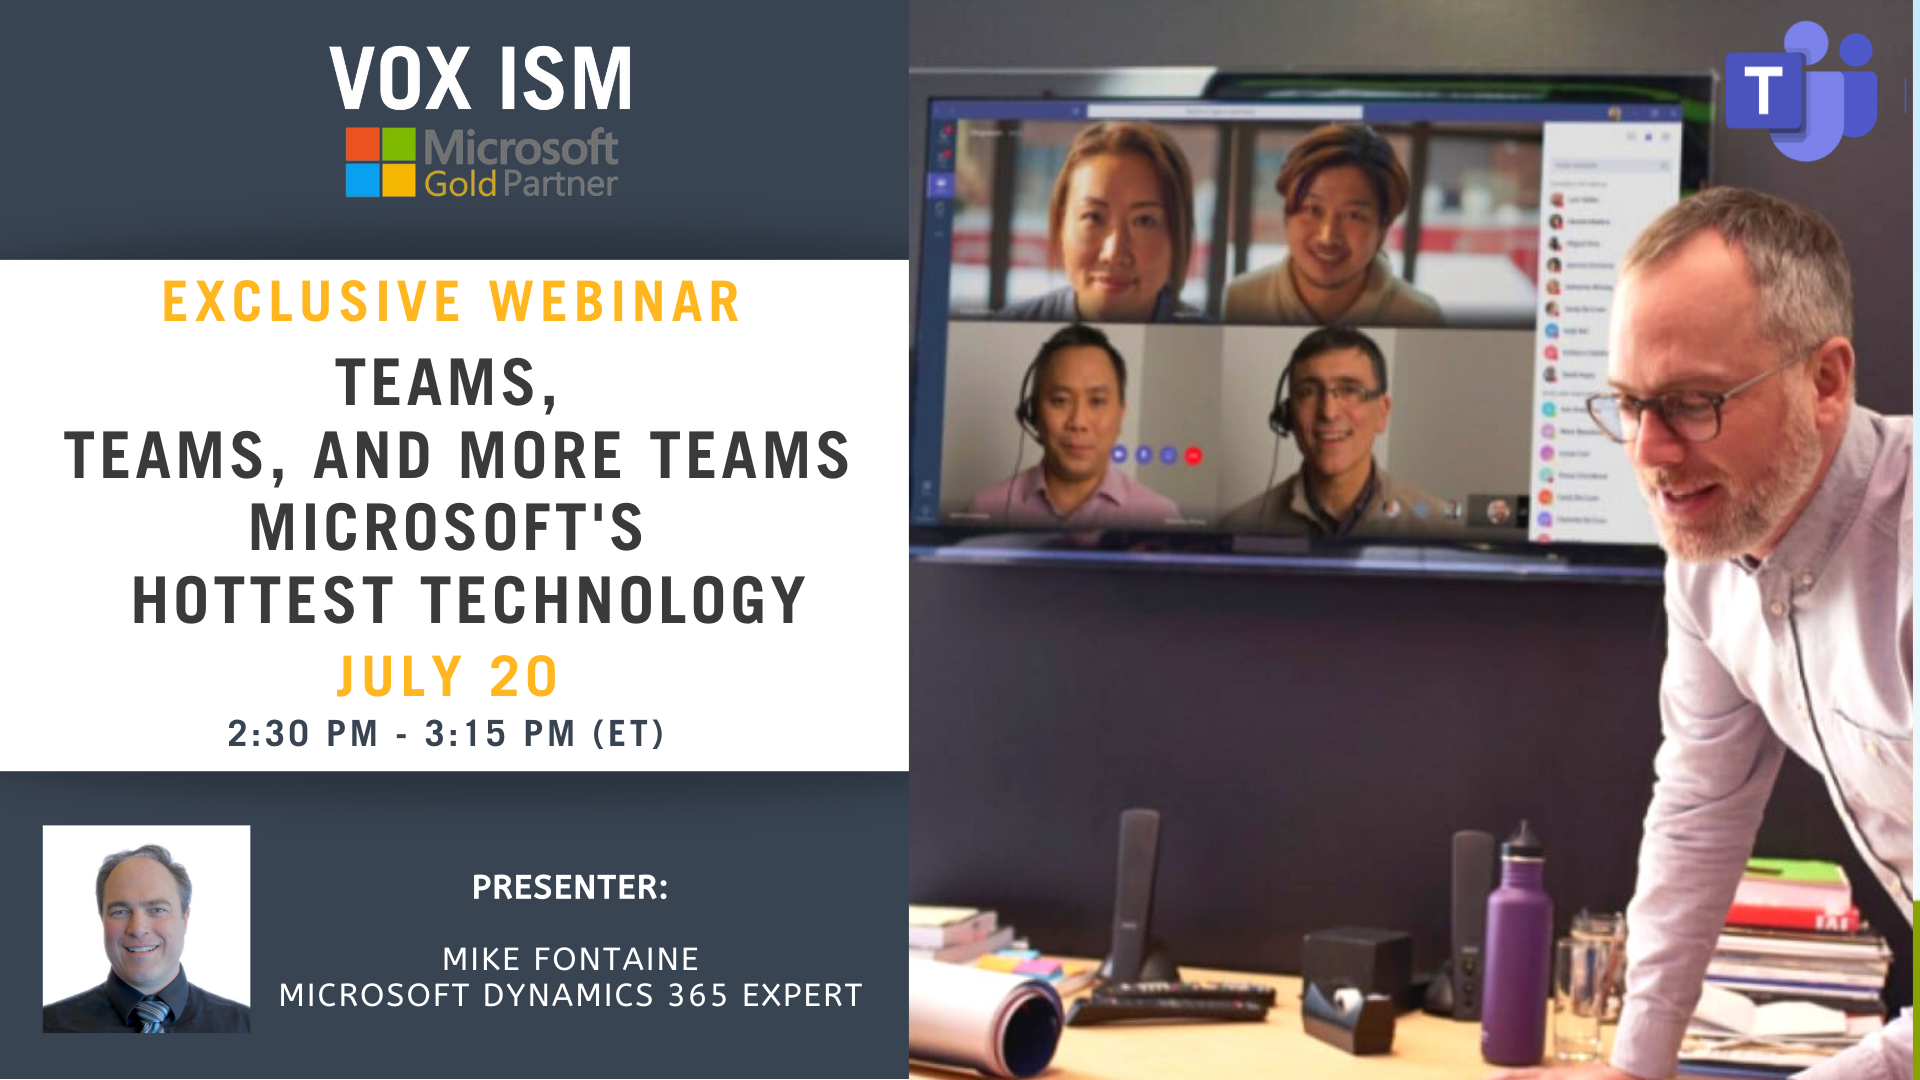 TEAMS, TEAMS, & more TEAMS Microsoft's Hottest Technology - July 20 - Webinar VOX ISM